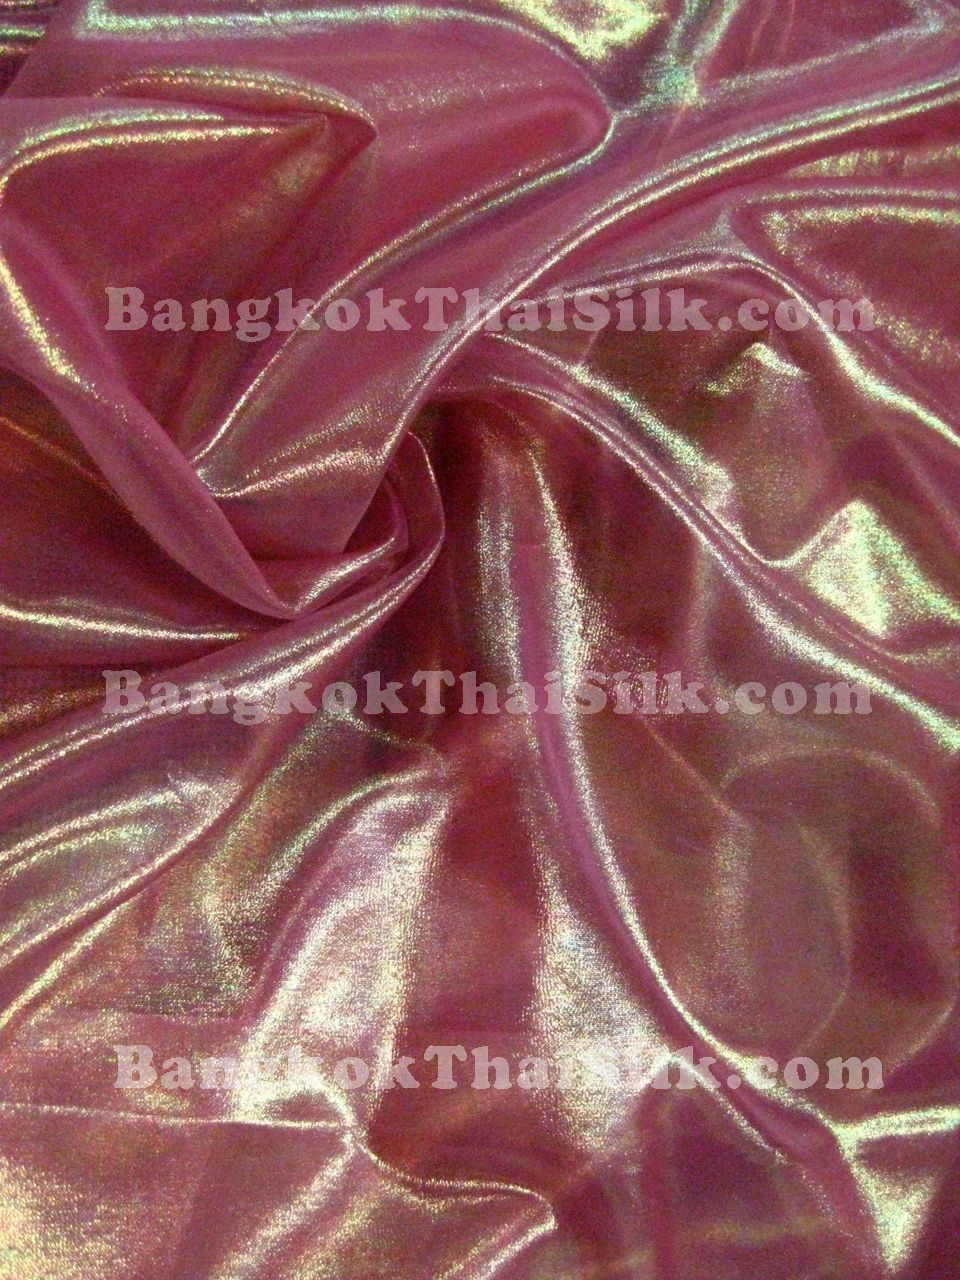 """Lime Green Sheer Organza Fabric 60/"""" Wide Roll Premium Quality Draping Wedding"""